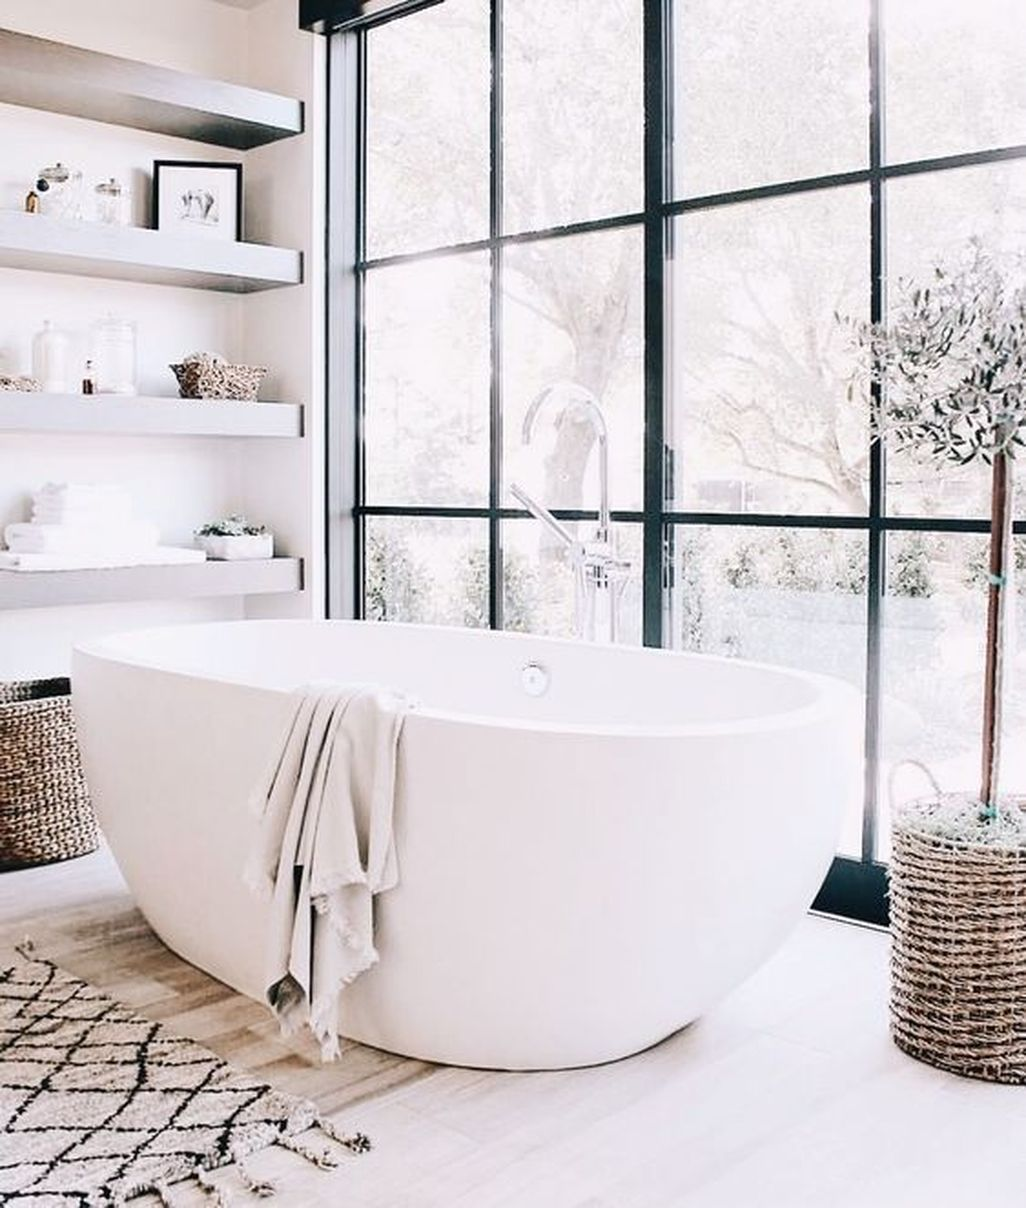 Nice elegant interior european style ideas that will make your home look brighter more also  simple organic modern bath design traditional pacific northwest rh pinterest